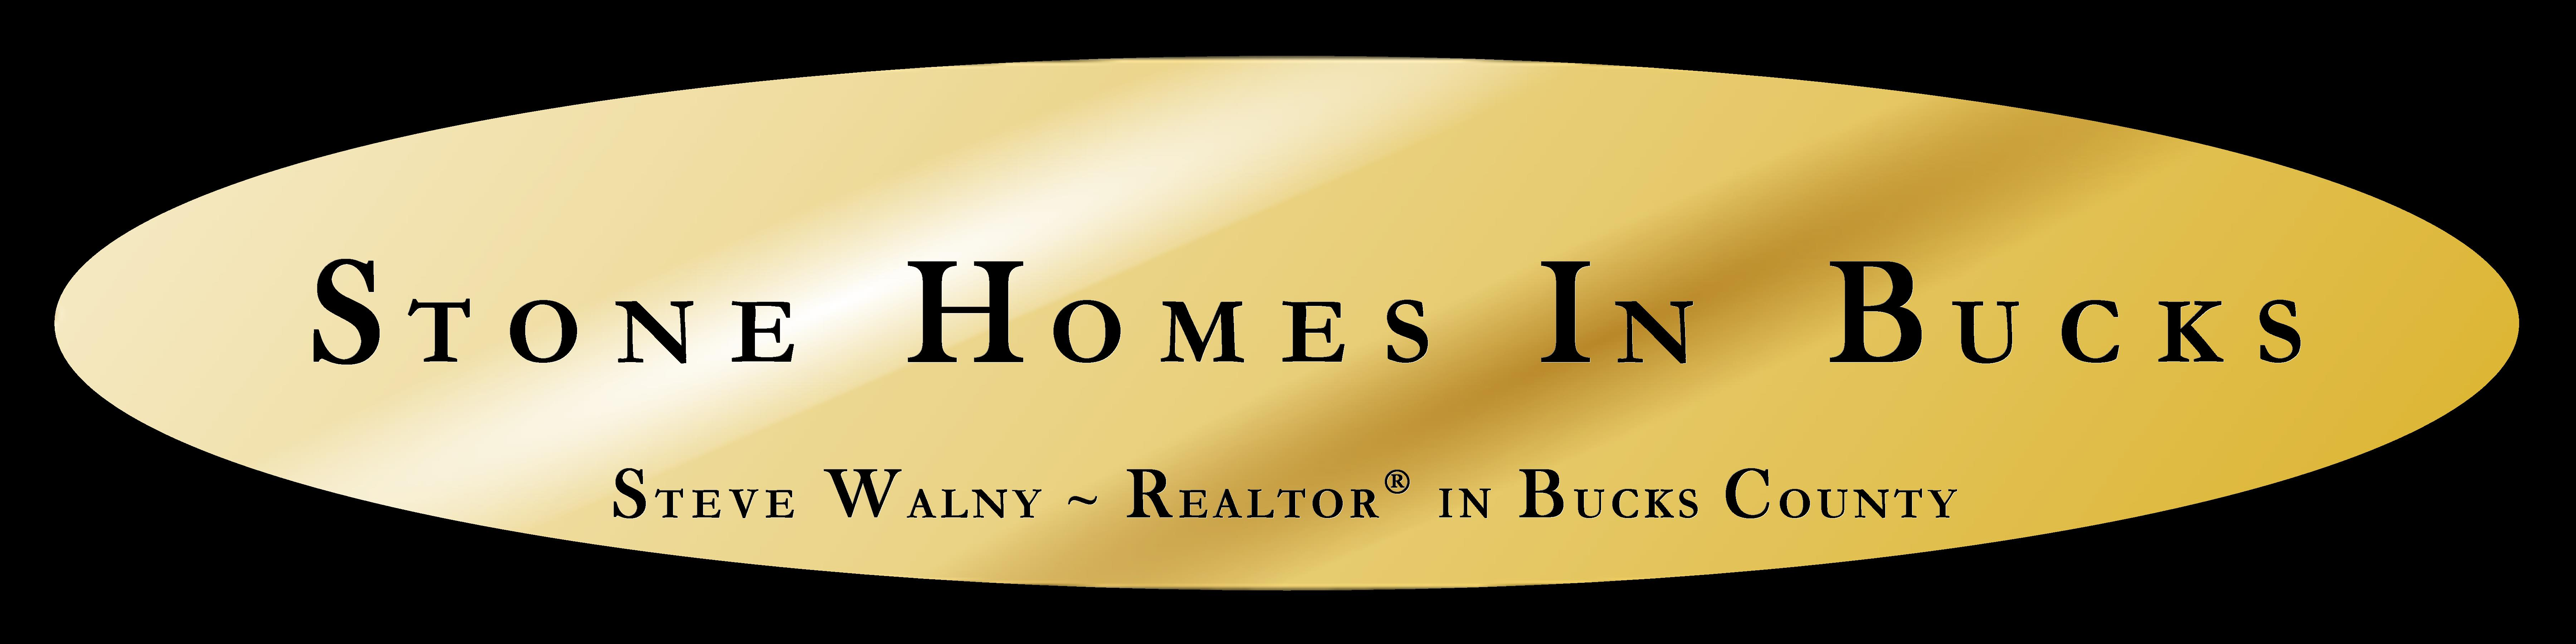 Stone Homes in Bucks County PA for Sale | Stone Homes In Bucks | #StoneHomesInBucks | #StoneHomesForSale